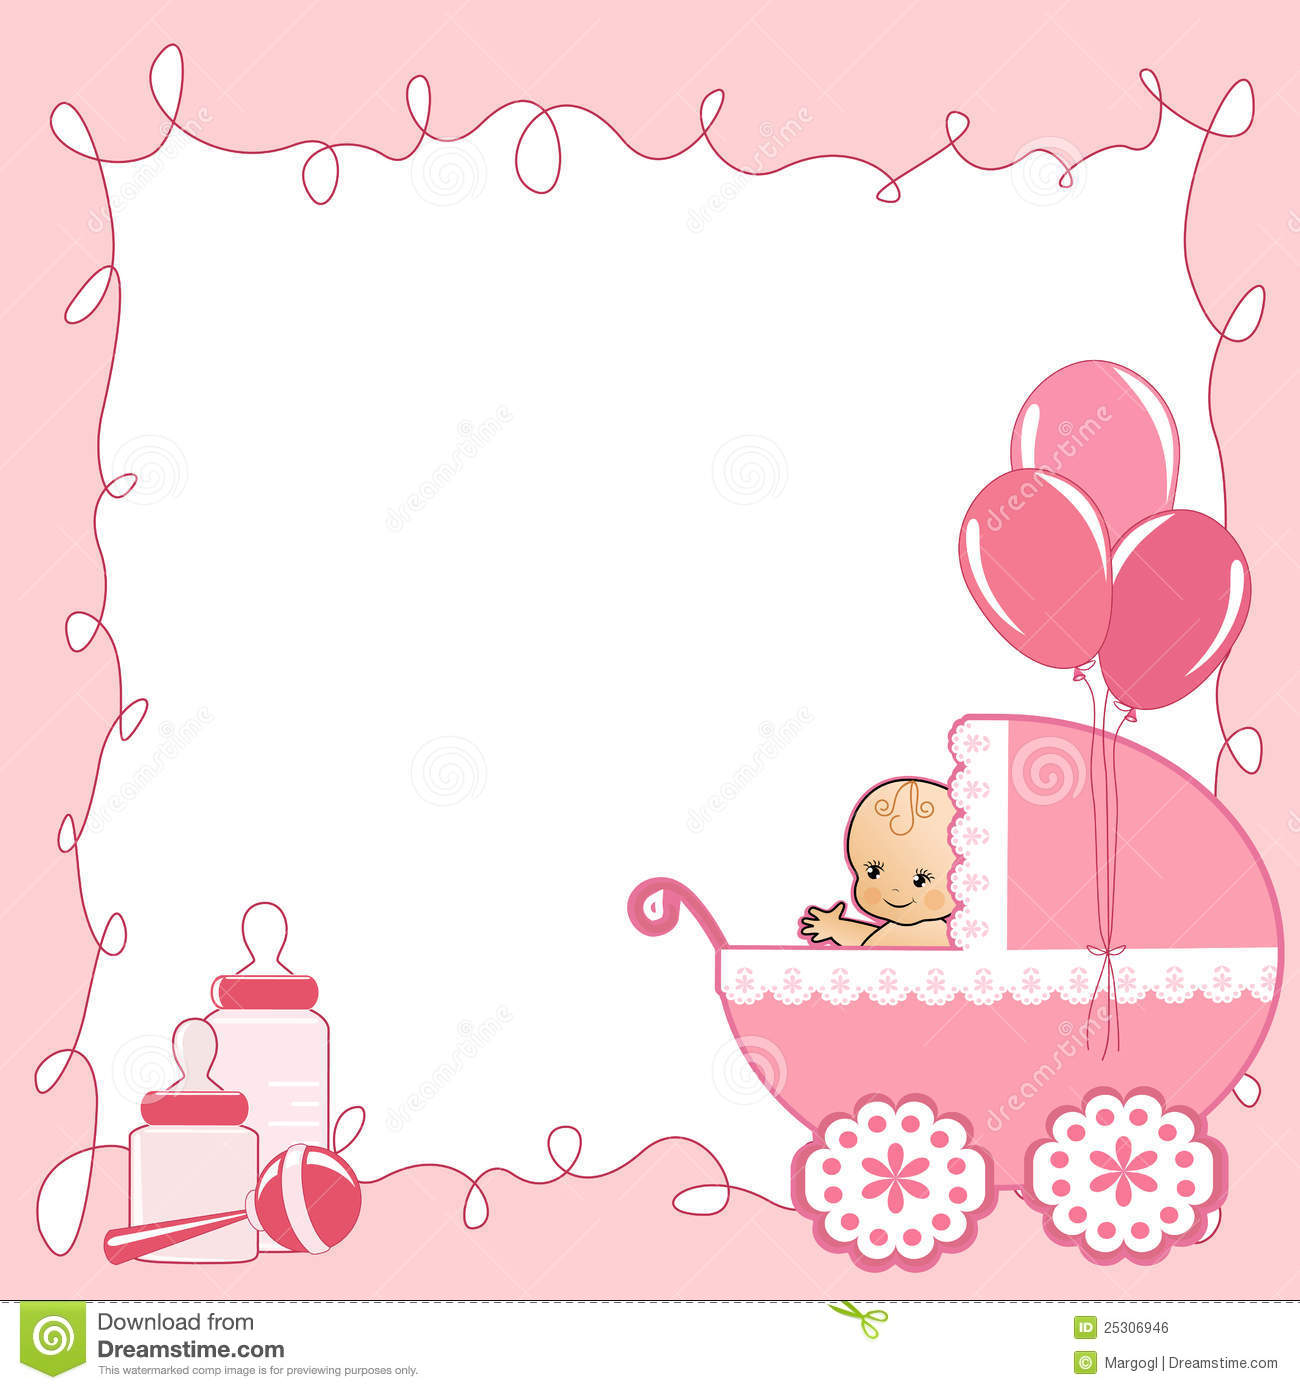 baby shower card royalty free stock image image 25306946 1300x1390